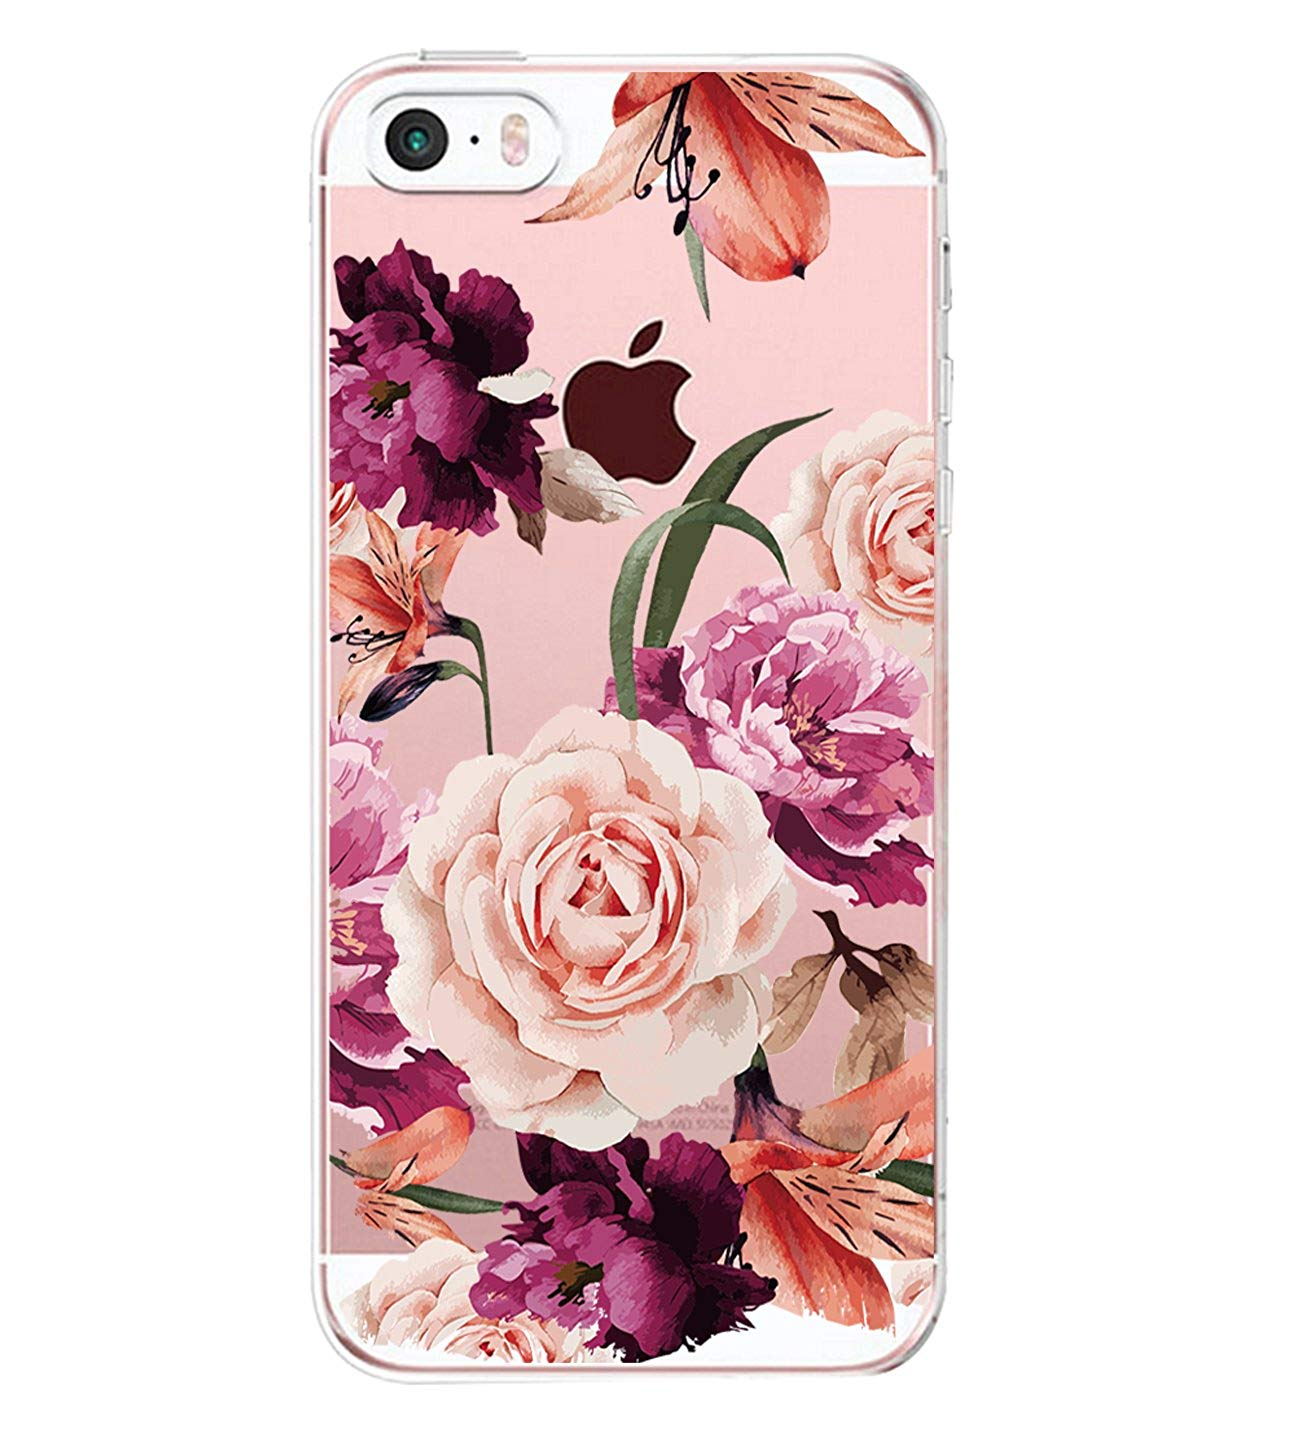 Case for iPhone SE 5 S, Thin Case Cover TPU Rubber Gel, Transparent Clear Back Case, Soft Silicone-flower pattern